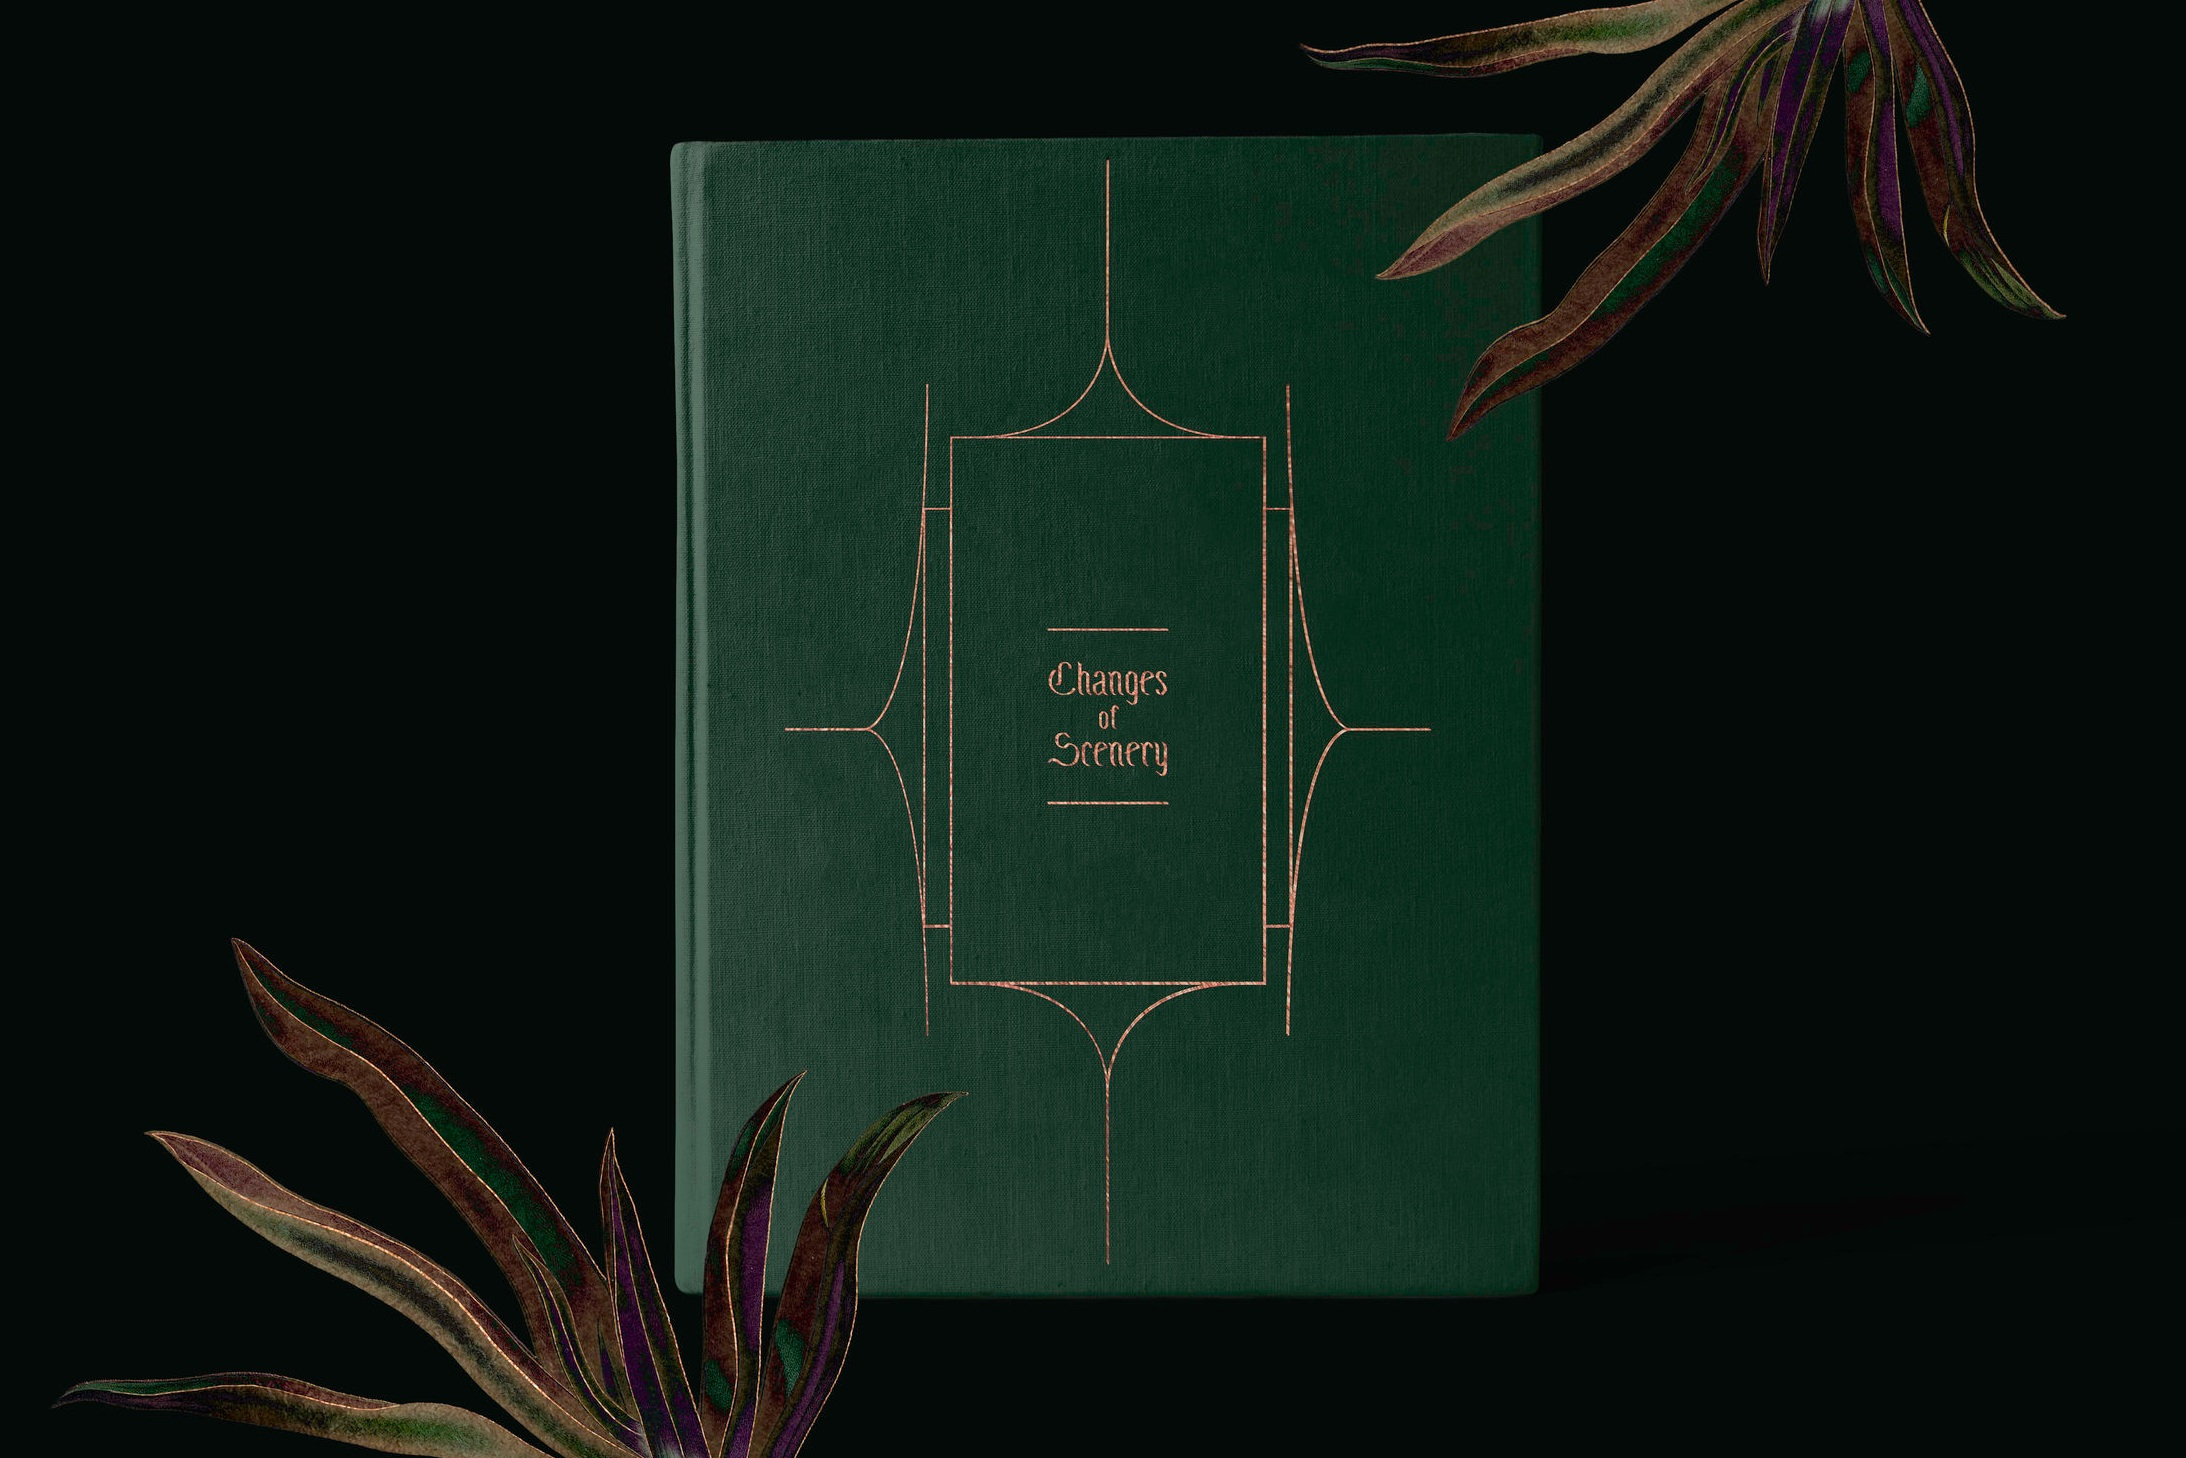 frontcover_book.jpg